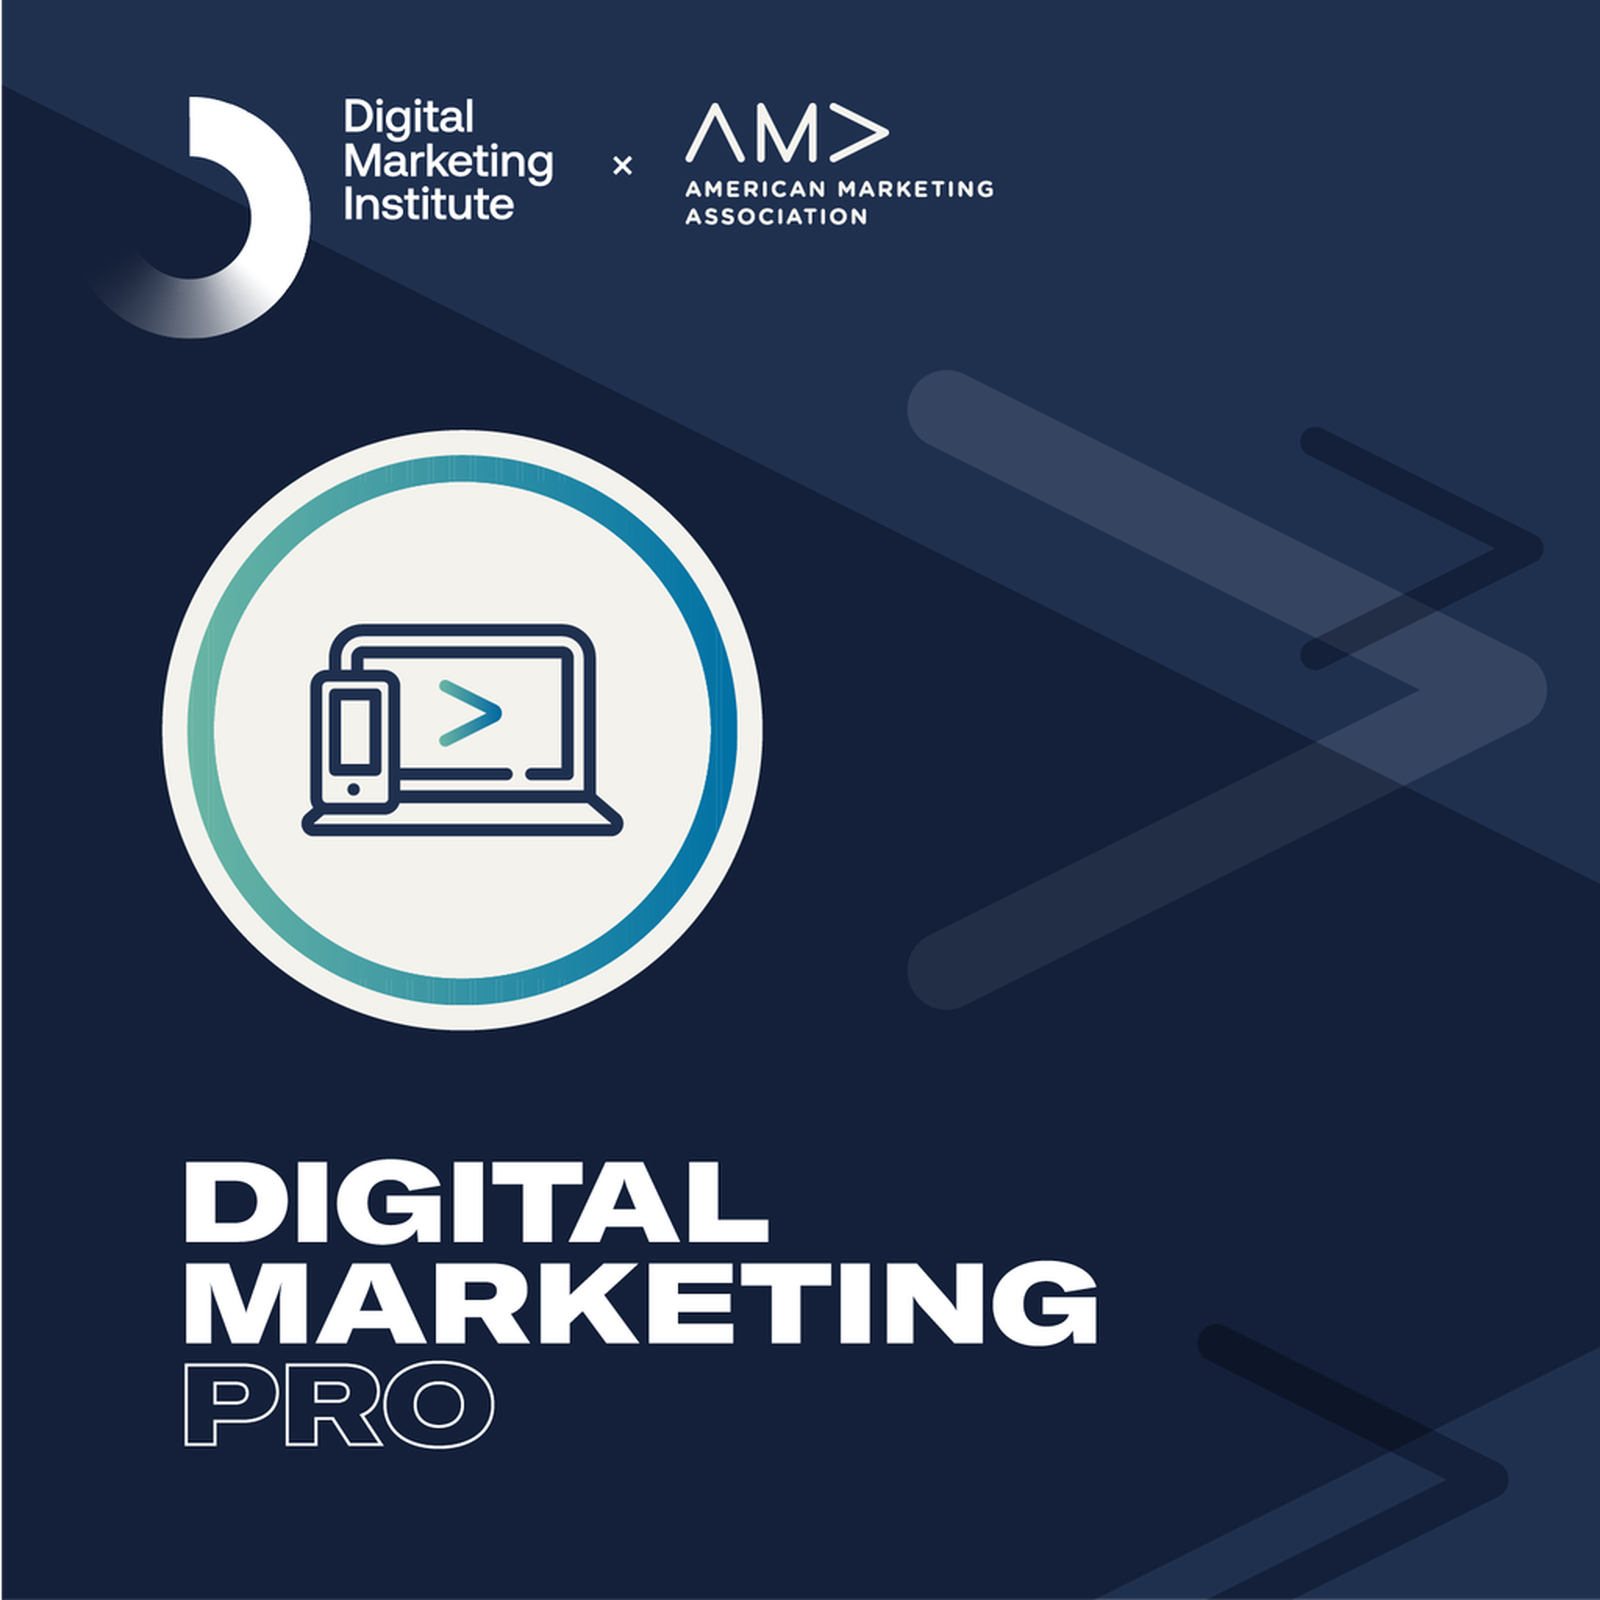 Digital-Marketing-Cerification-AMADMI-1600x1600b